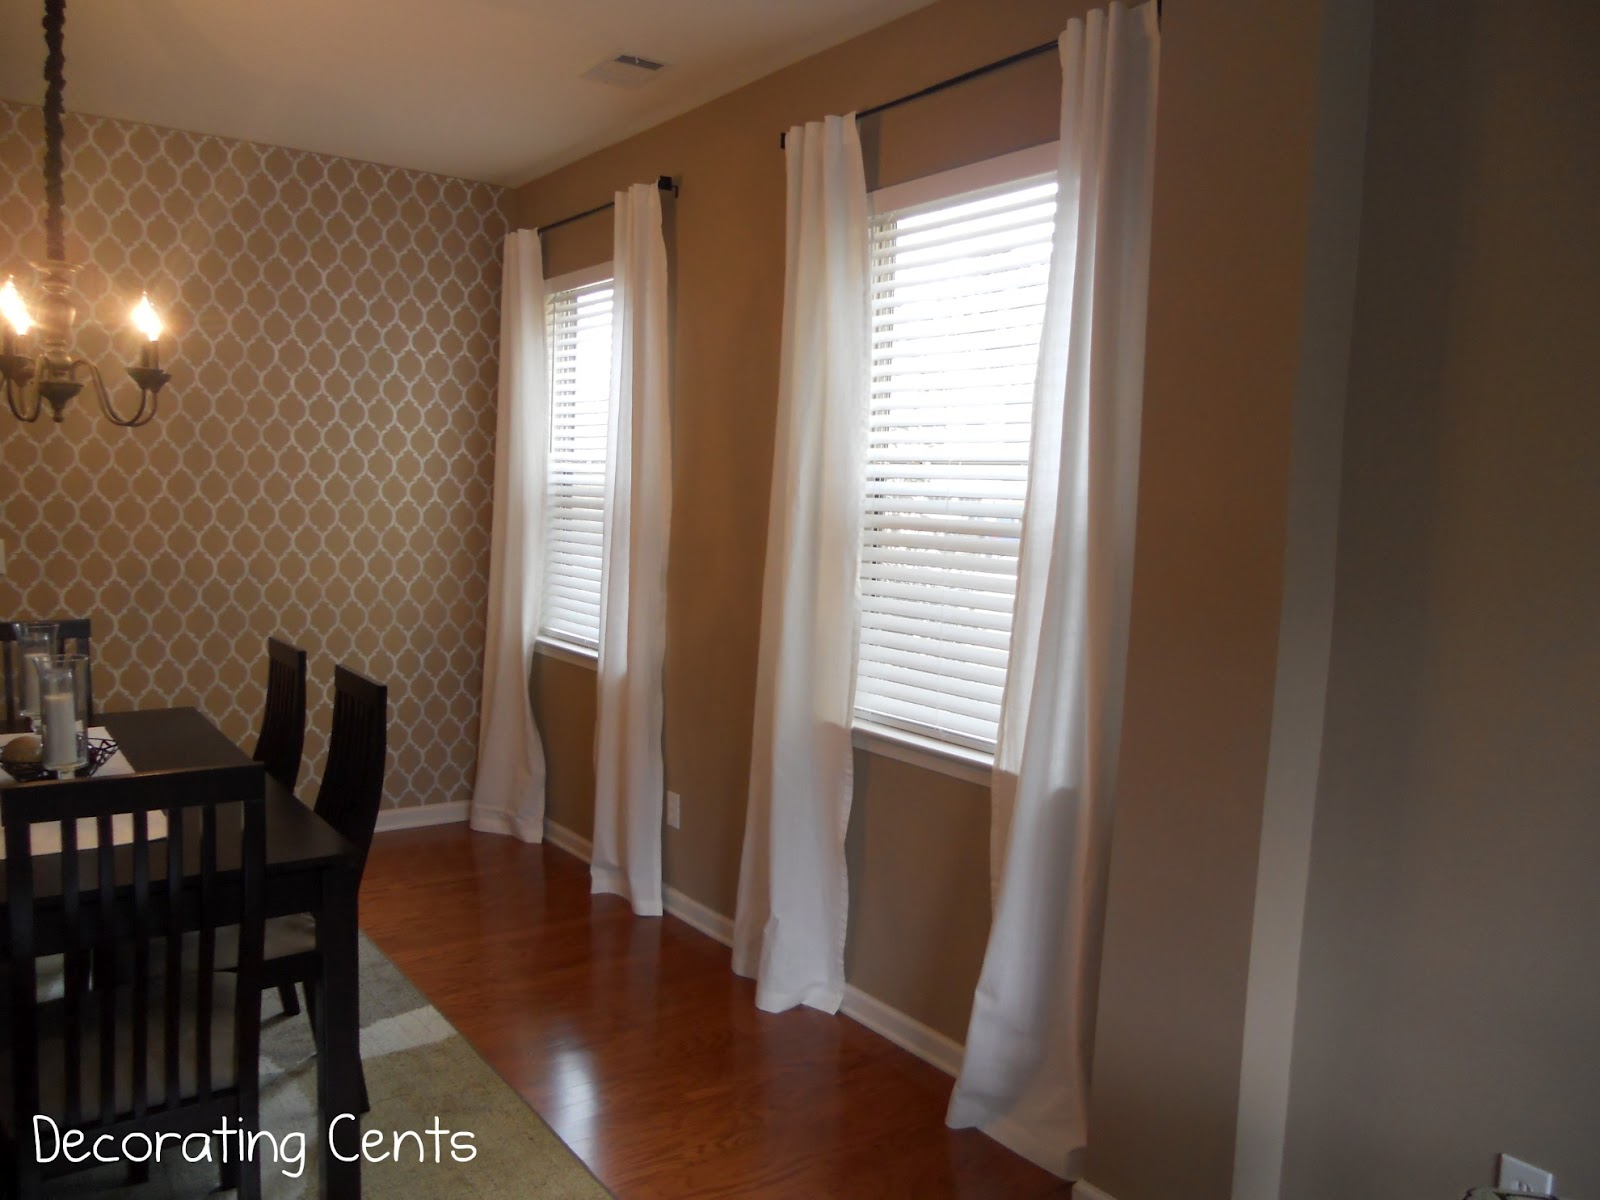 Decorating Cents: Dining Room Curtains